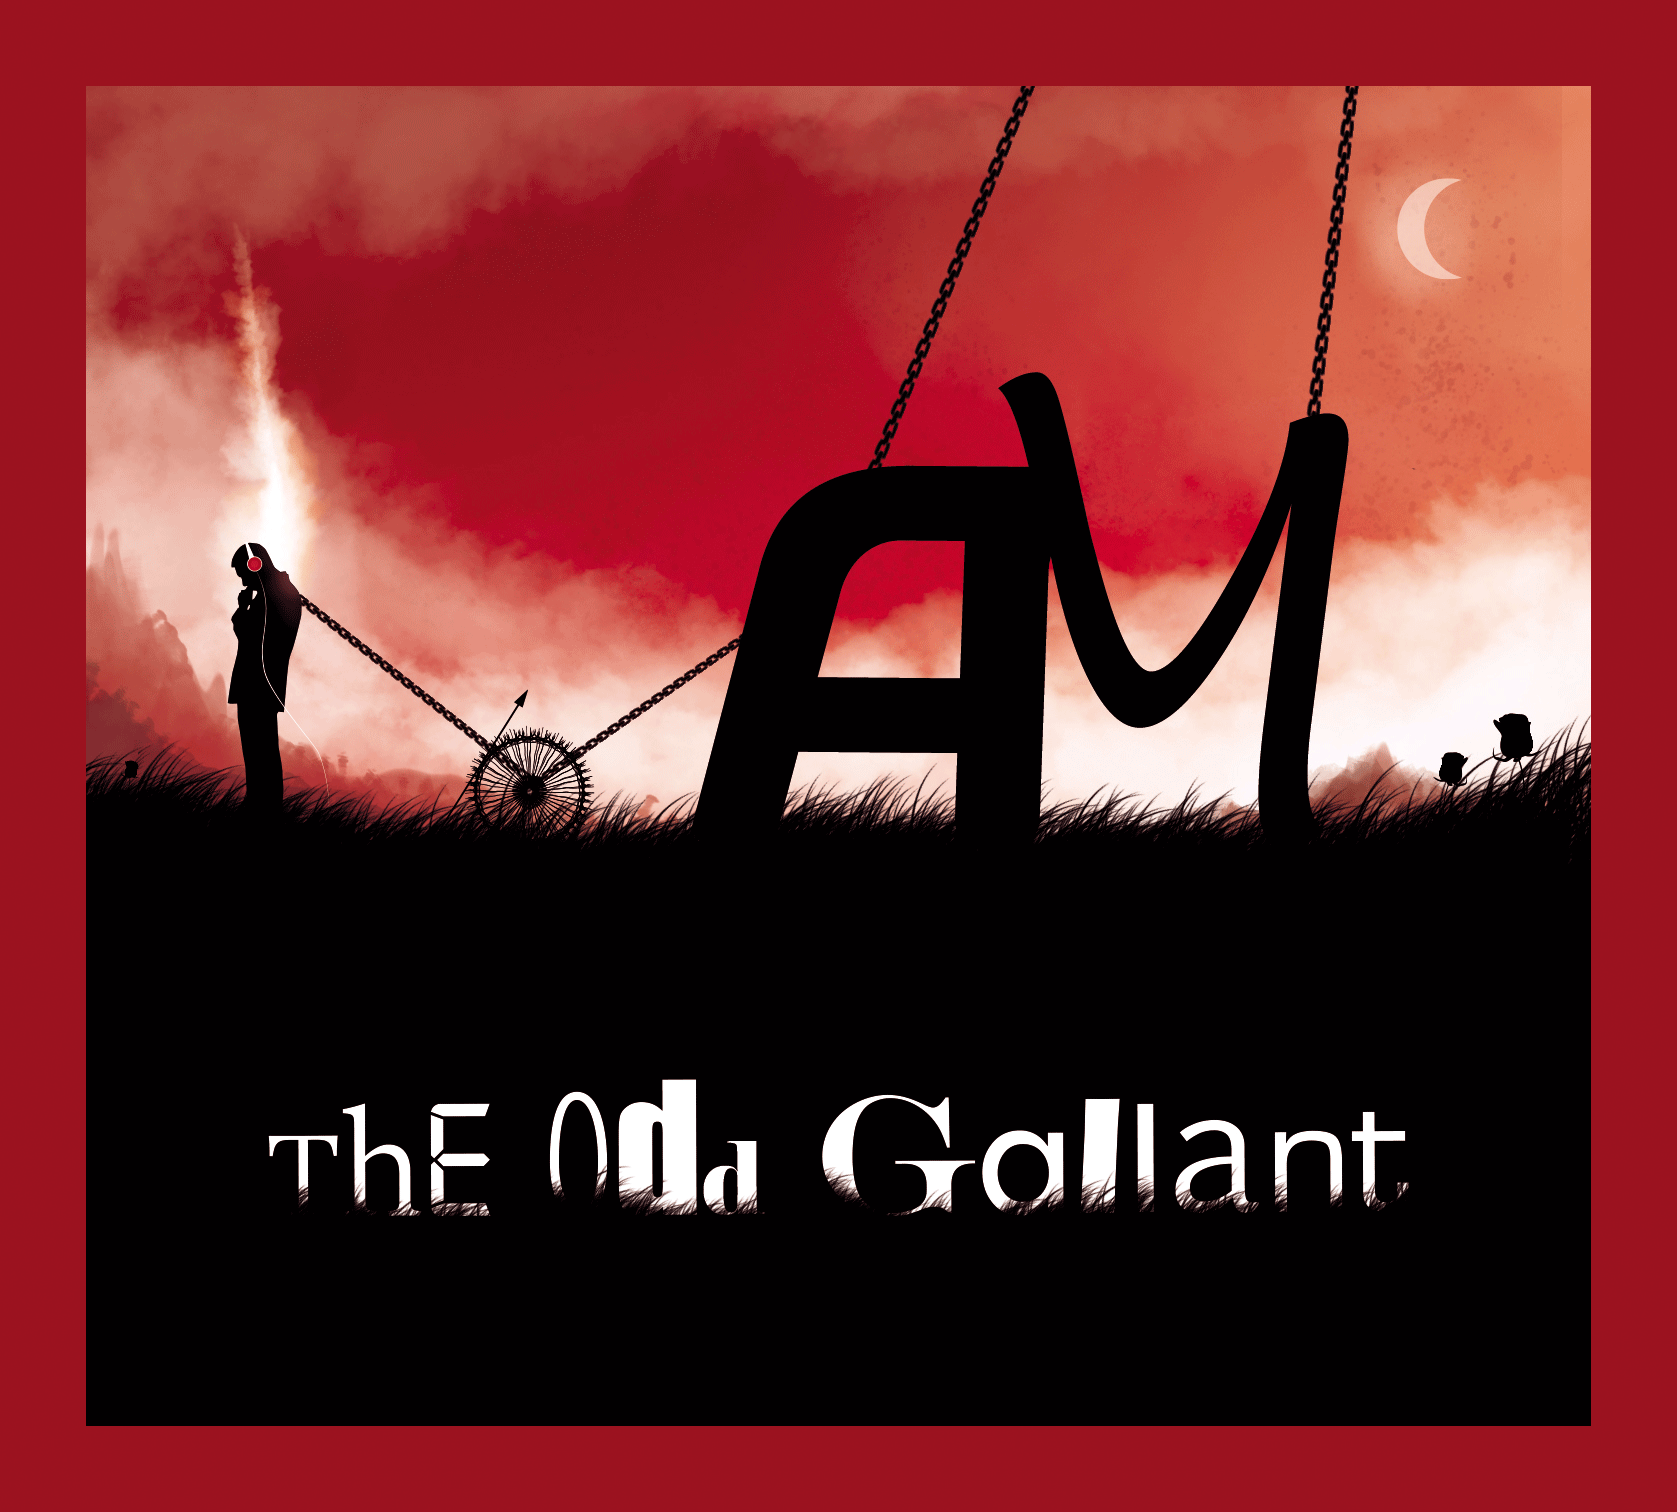 The Odd Gallant: AM